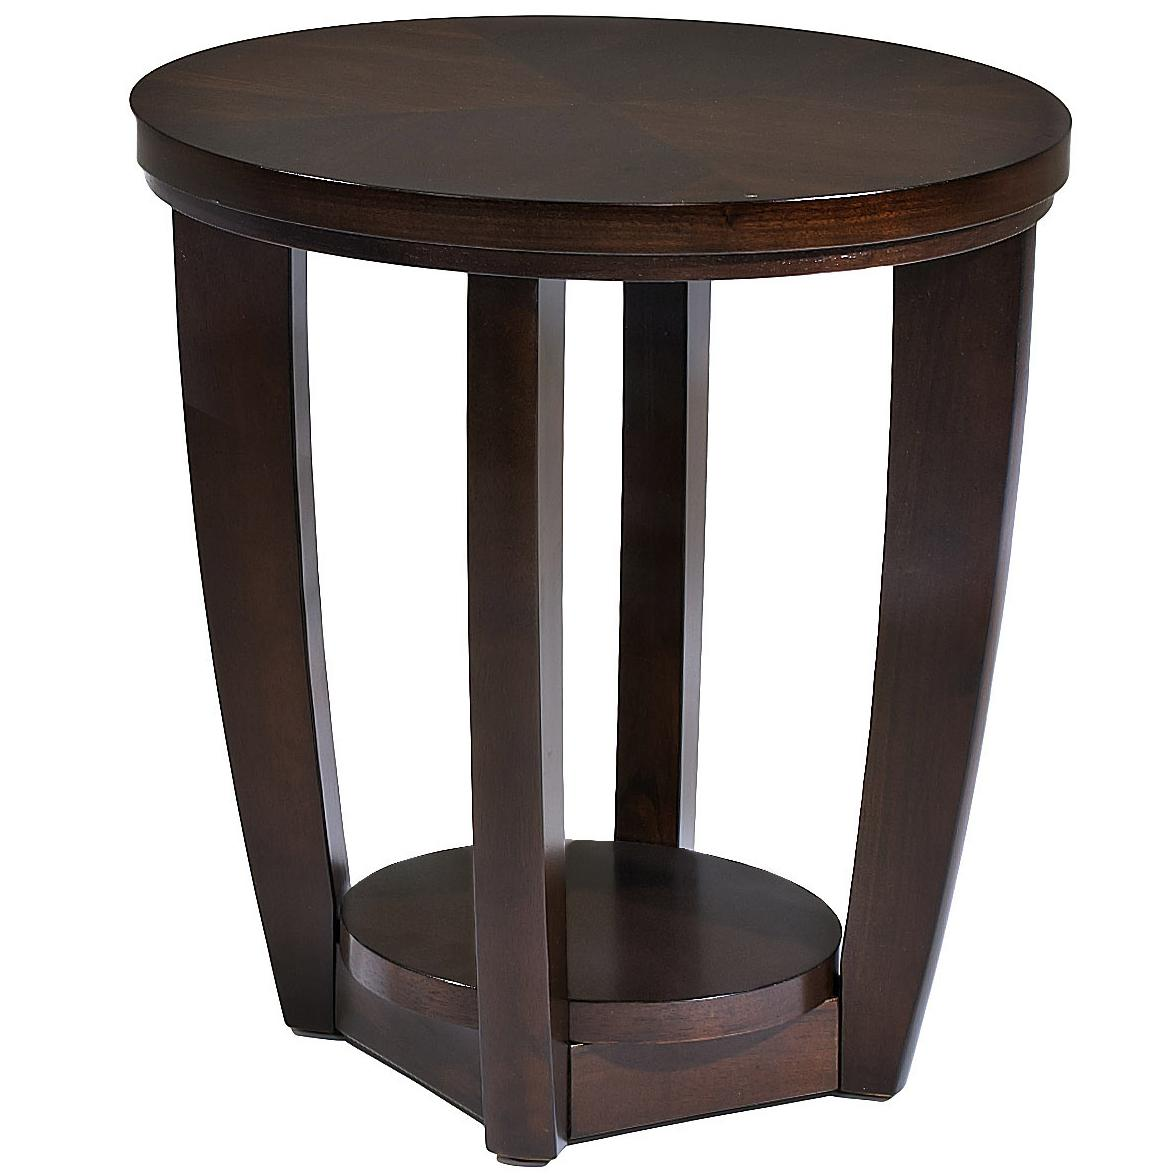 Hayden round end table with 1 shelf morris home end table for Morris home